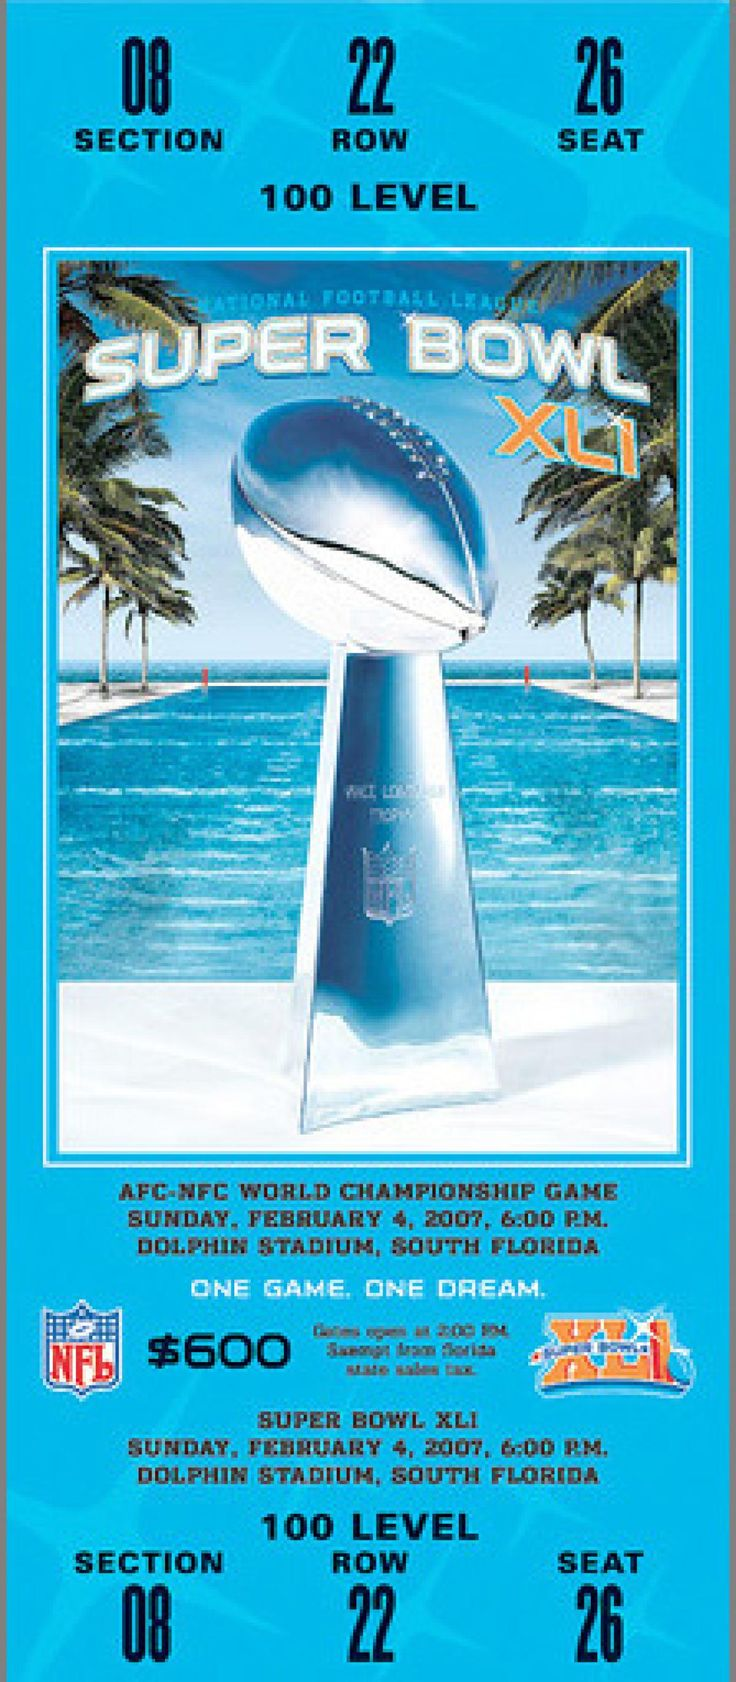 Played on February 4, 2007 at Dolphin Stadium in Miami Gardens, Florida. The MVP of the game was Colts QB Peyton Manning. The average ticket cost was $650.00